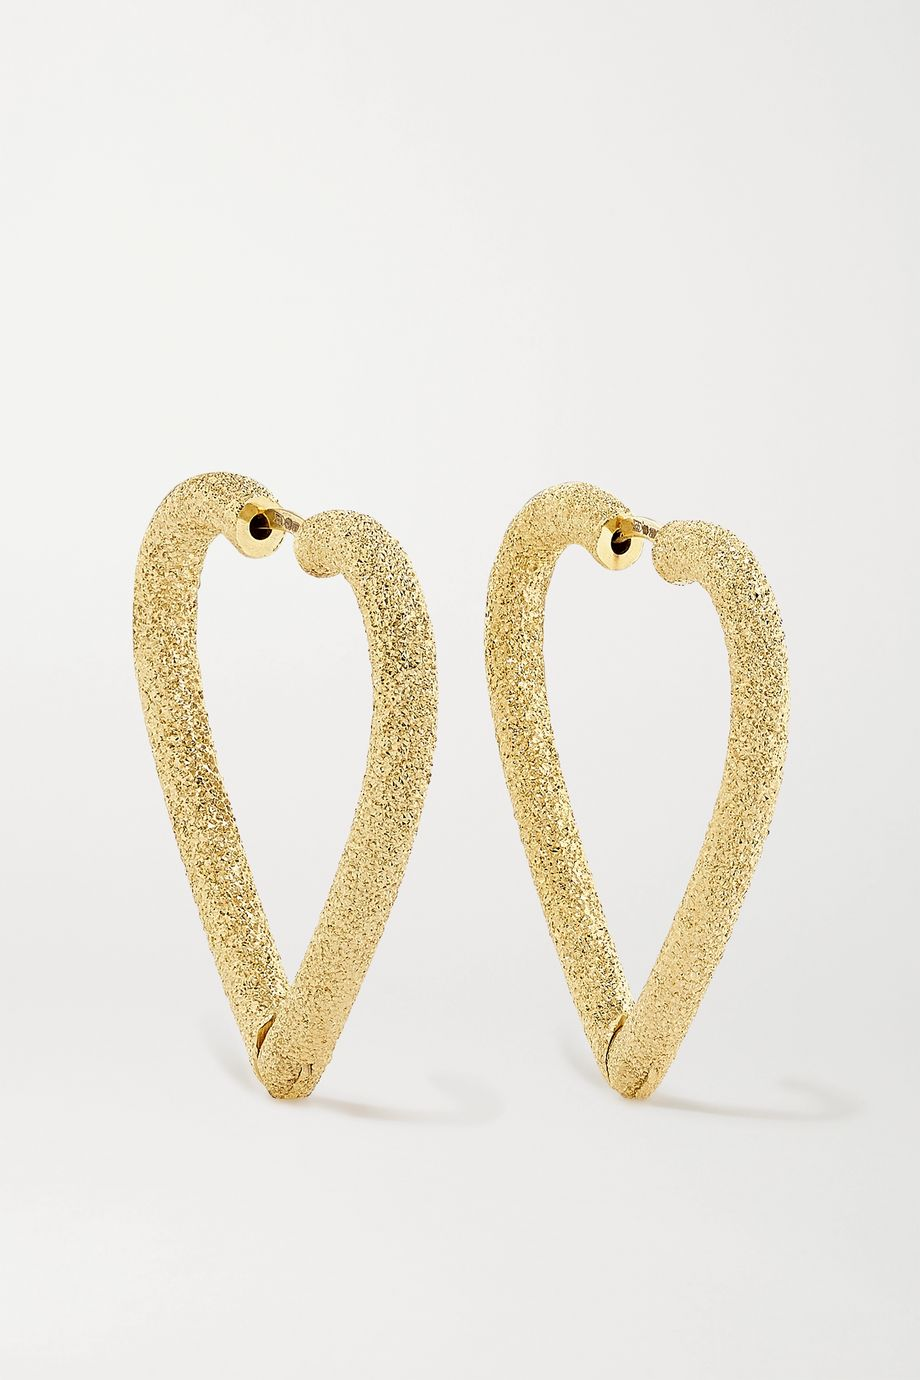 Carolina Bucci Cuore 18-karat gold hoop earrings